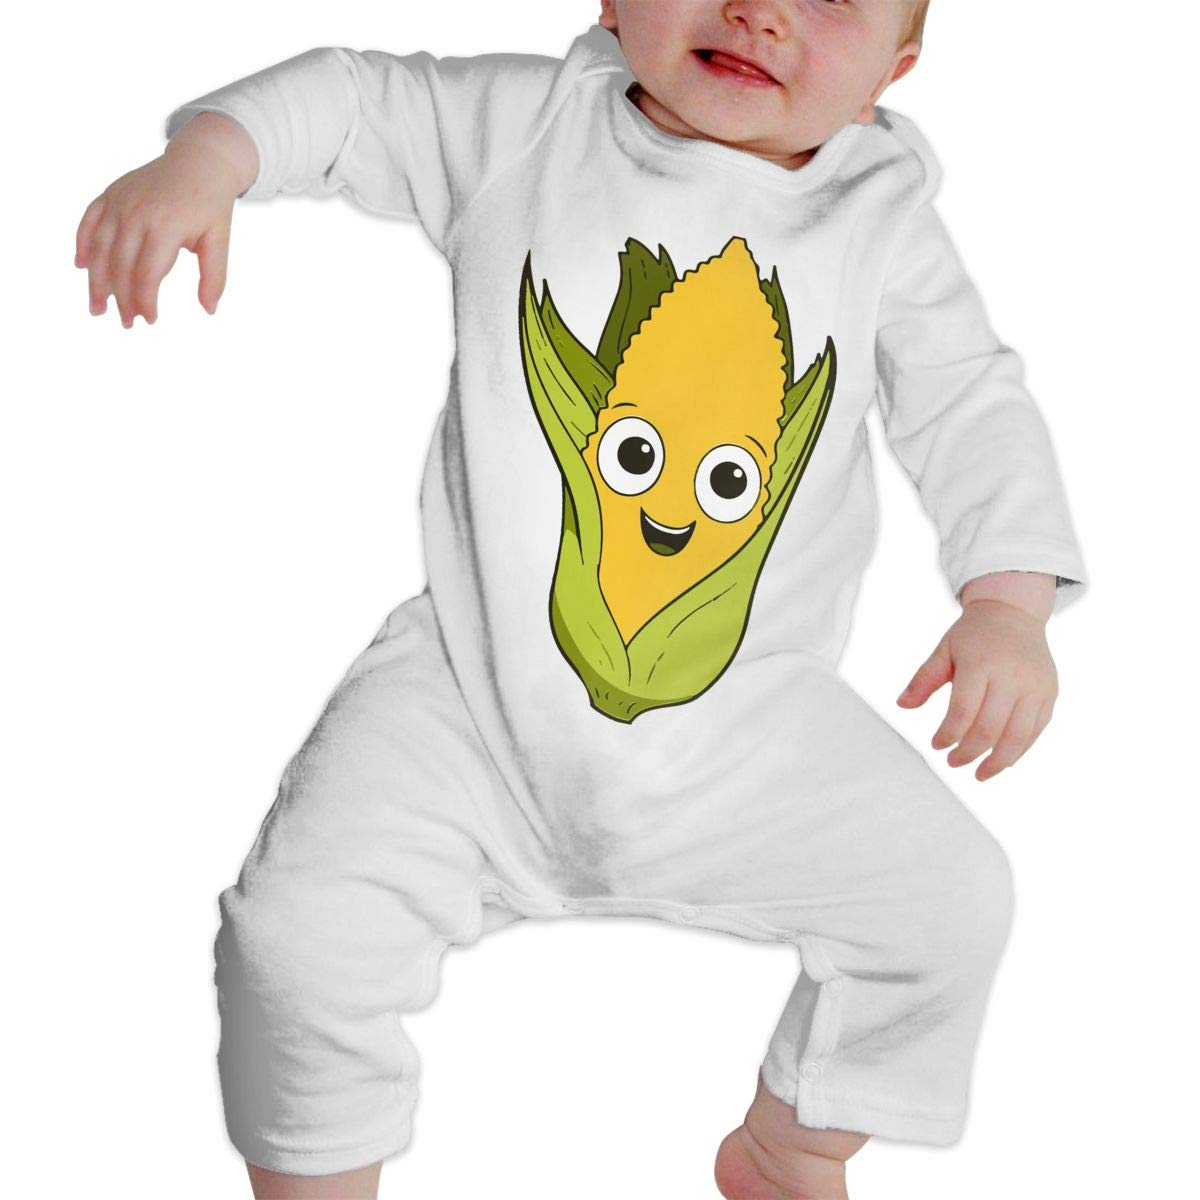 A1BY-5US Baby Infant Toddler Cotton Long Sleeve Cartoon Corn Climb Jumpsuit Funny Printed Romper Clothes